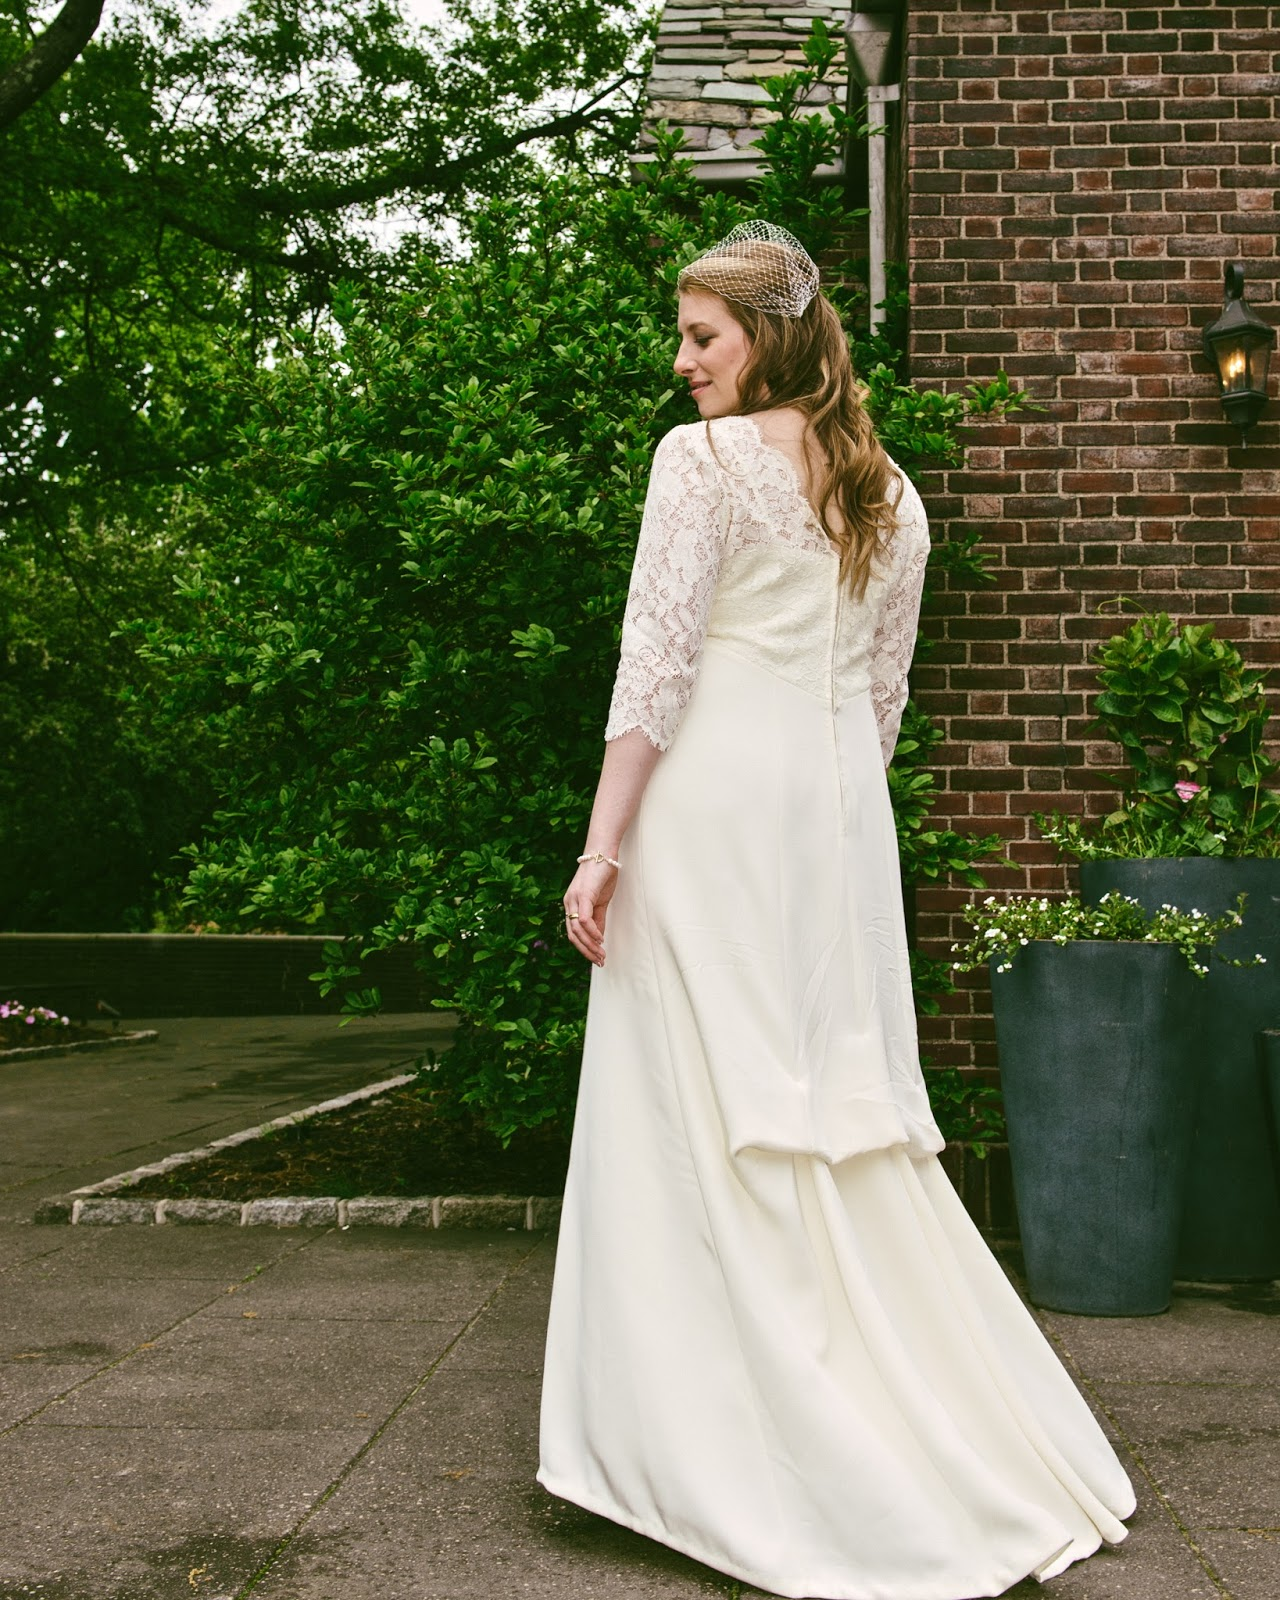 10 things to know about making my own wedding dress with photos